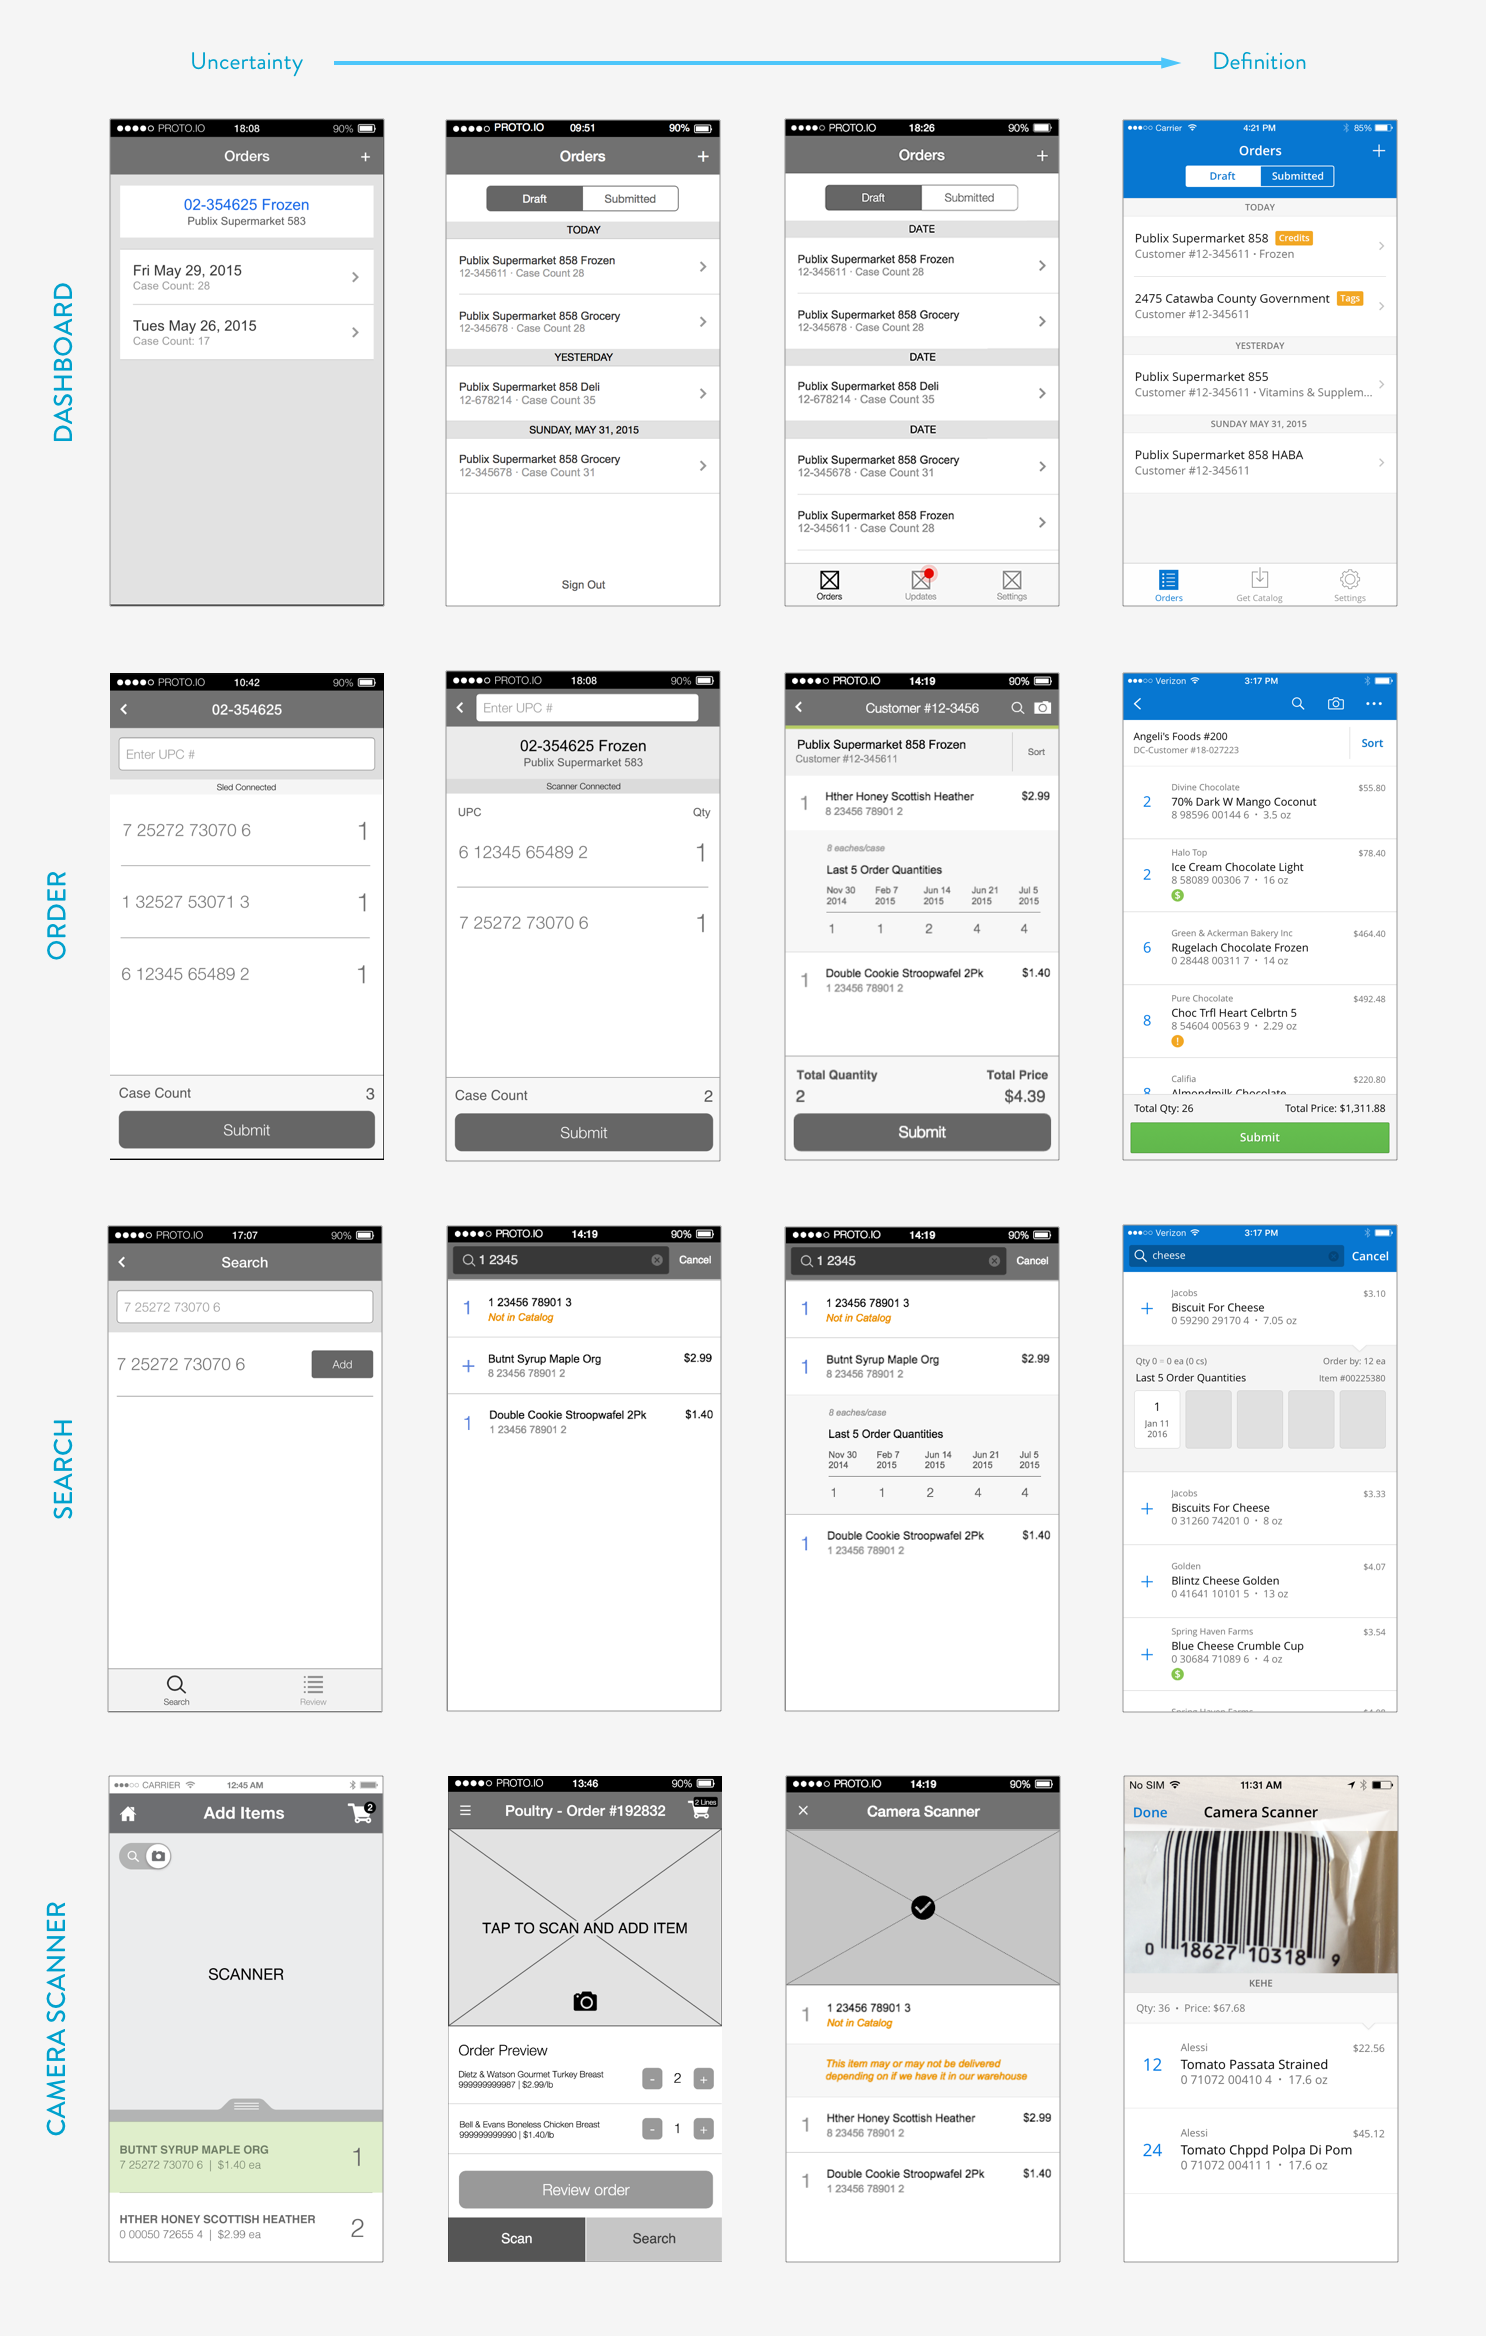 Sample wireframes showing the evolution of uncertainty to definition for four key screens.